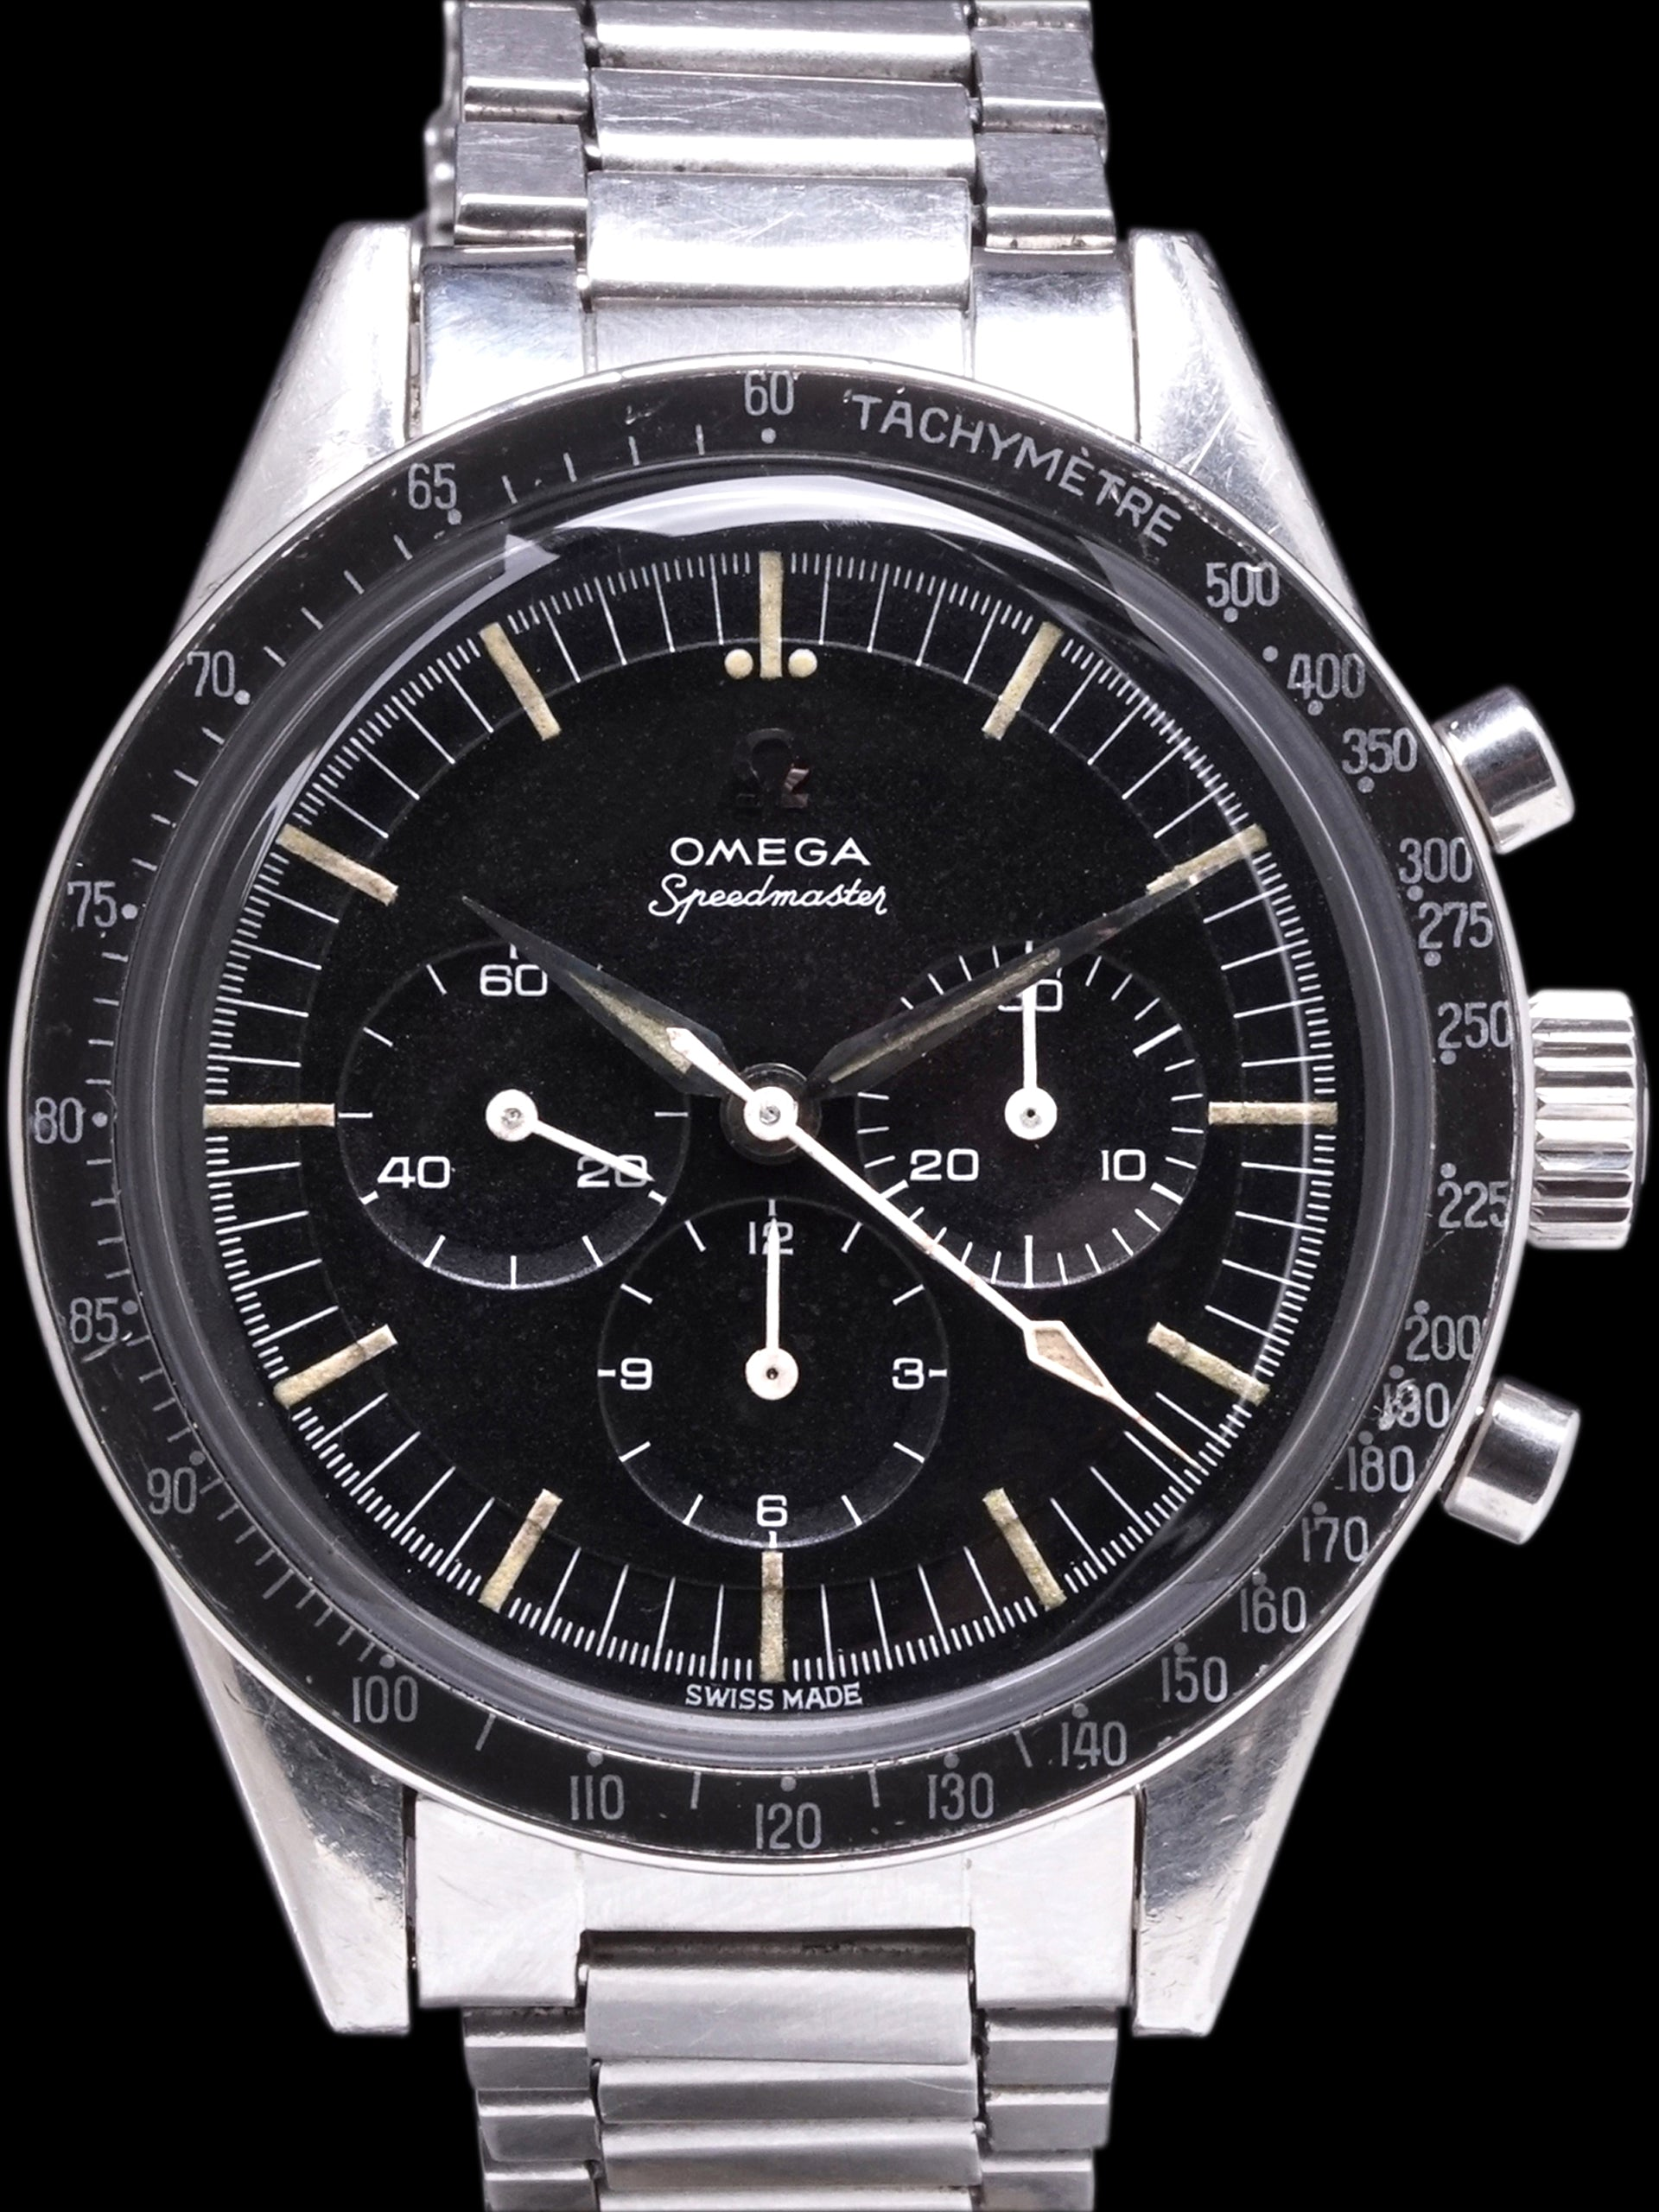 1962 OMEGA Speedmaster (Ref. CK2998-61) Cal. 321 W/ Military Provenance & Letter From The Original Owner